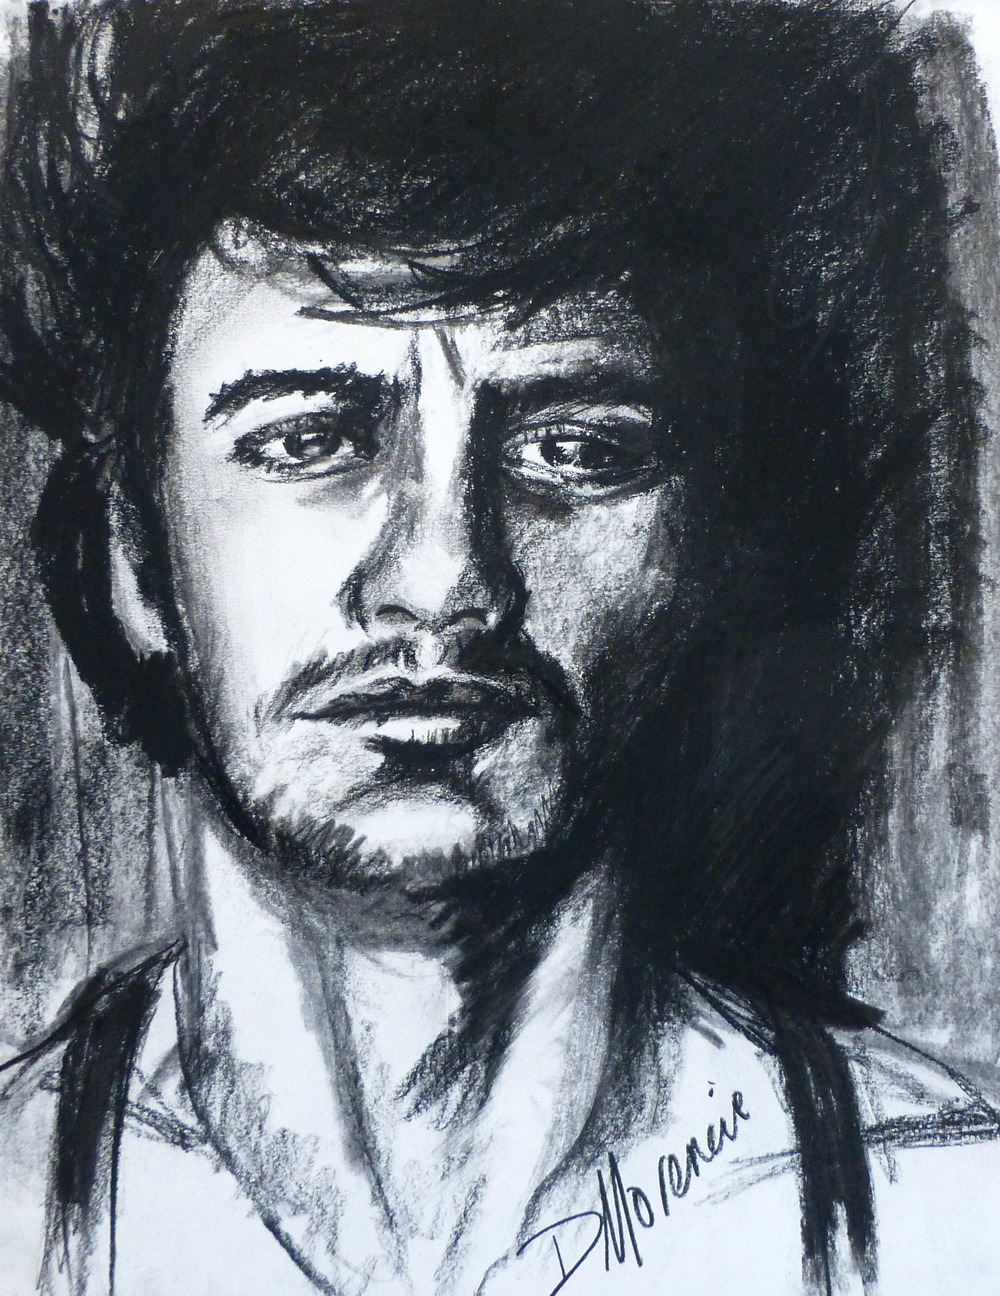 nwm - Sketch - Franco as Mapplethorpe.jpg